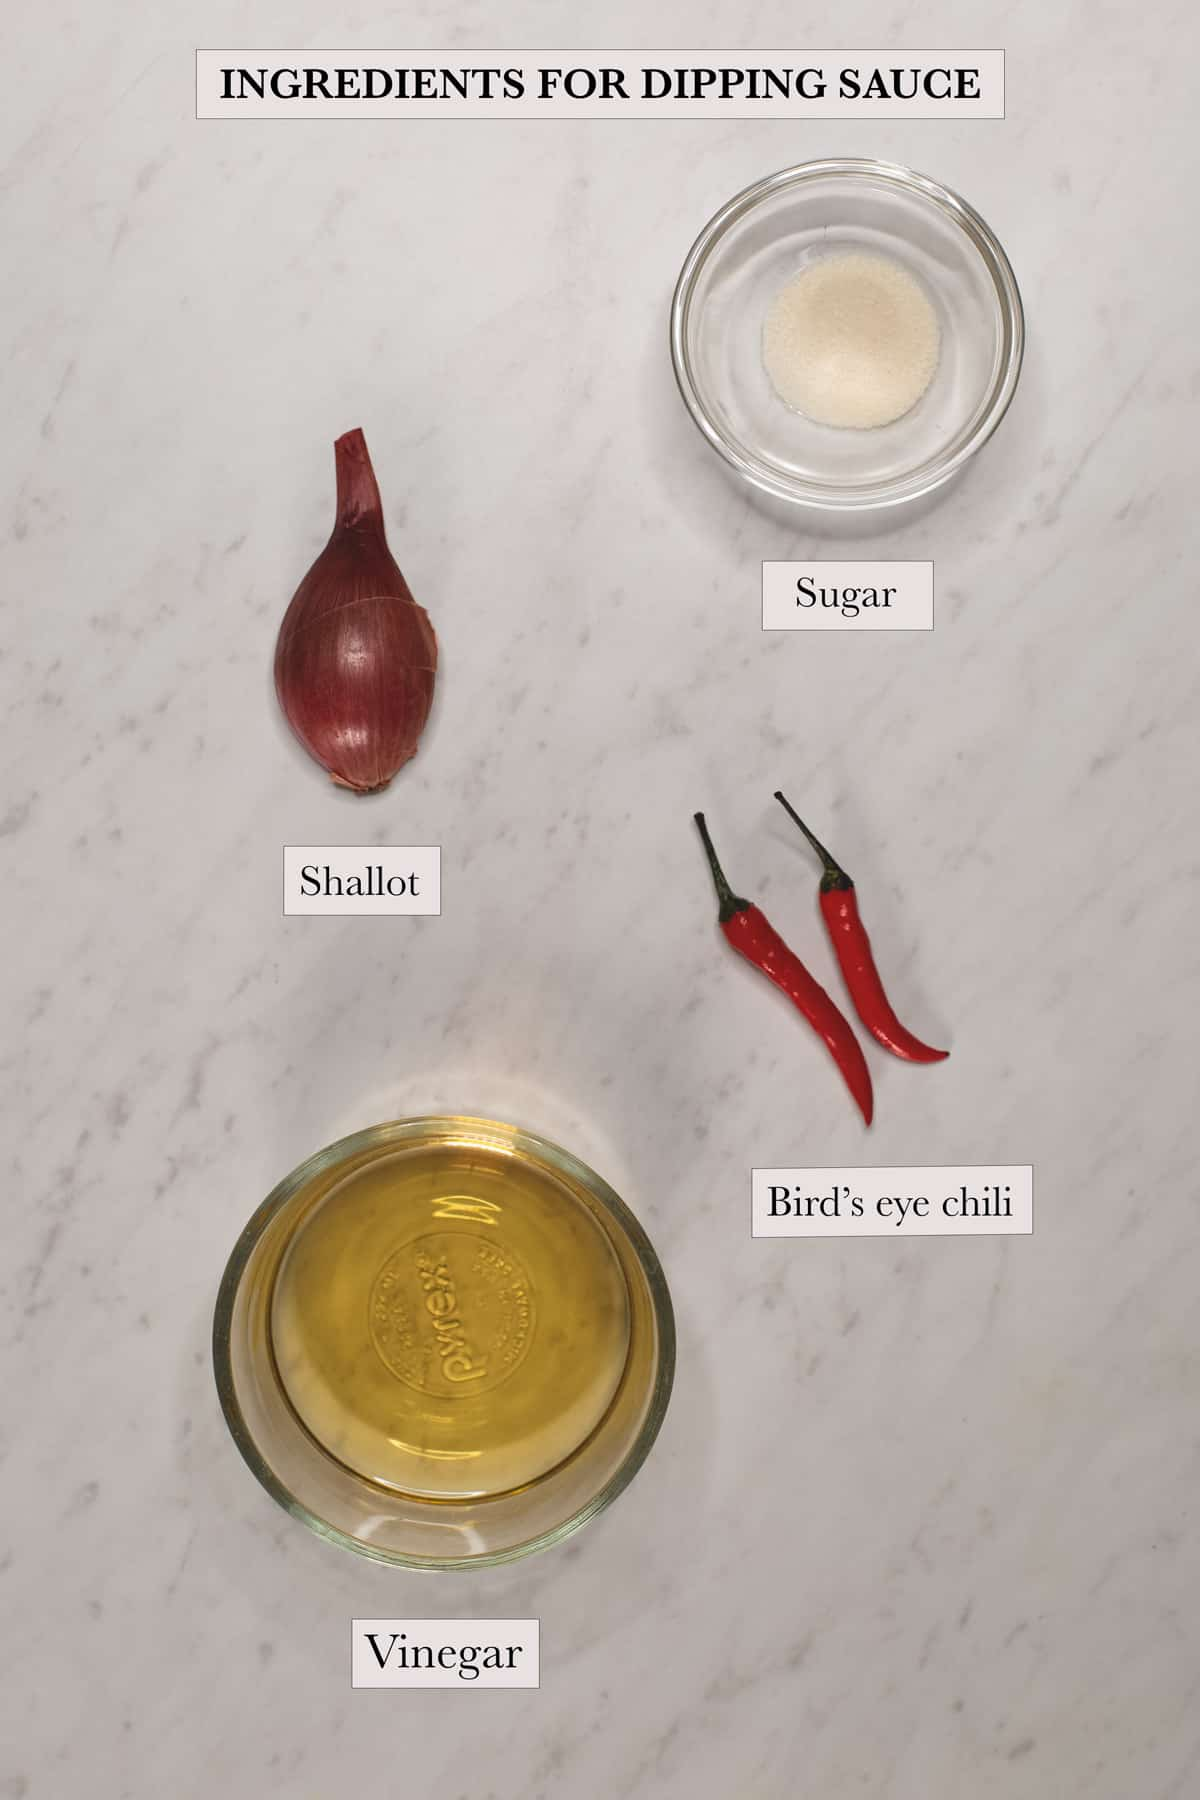 ingredients for the dipping sauce include shallot, sugar, bird's eye chili, and vinegar.